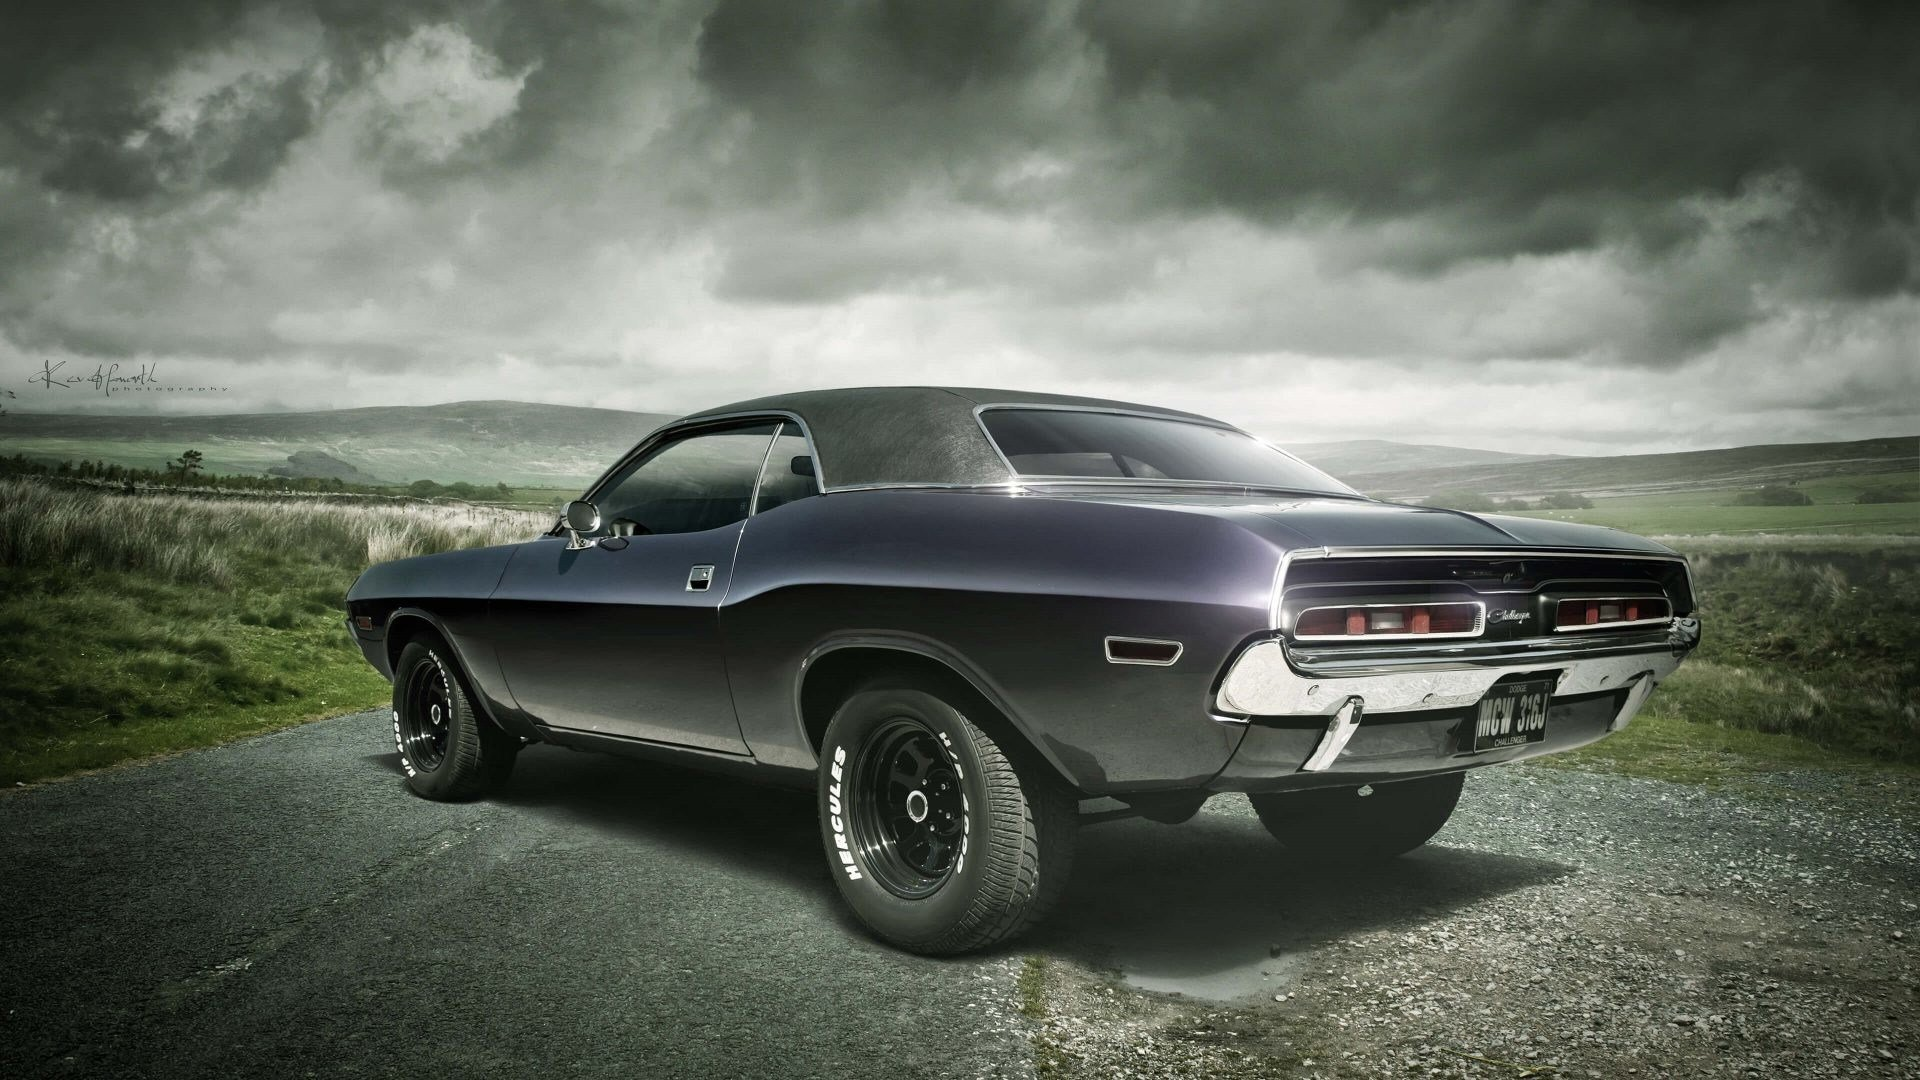 Latest Muscle Cars In 1920X1080 Wallpapers 65 Images Free Download